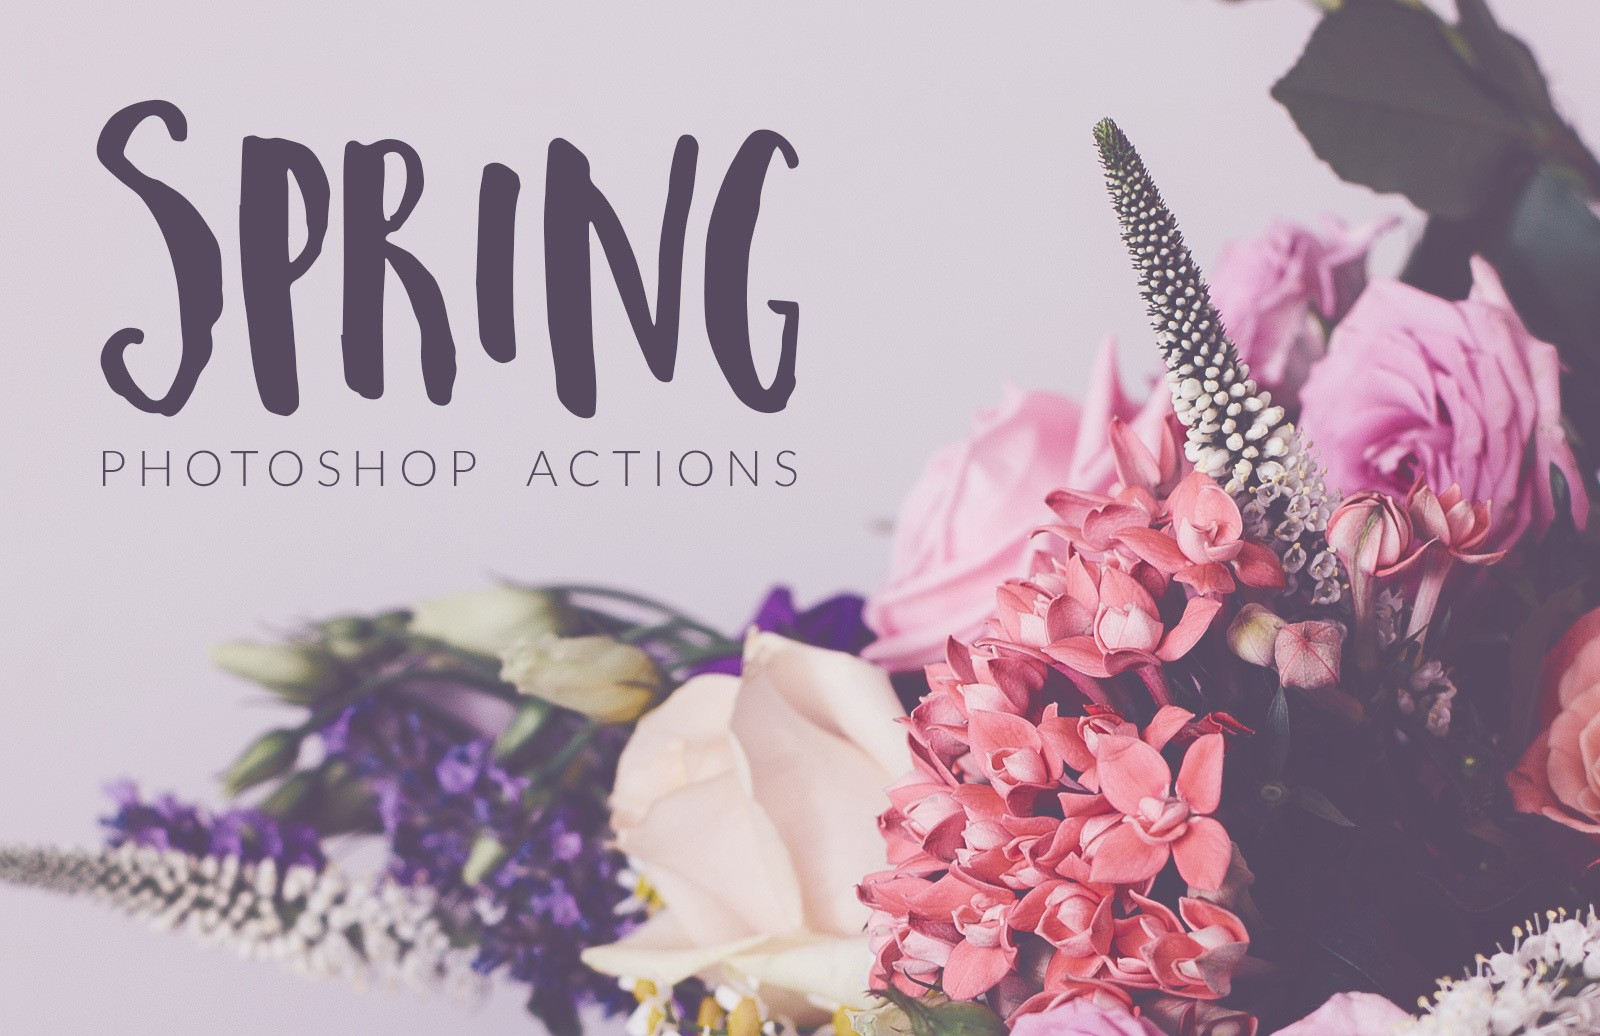 Spring Photoshop Actions